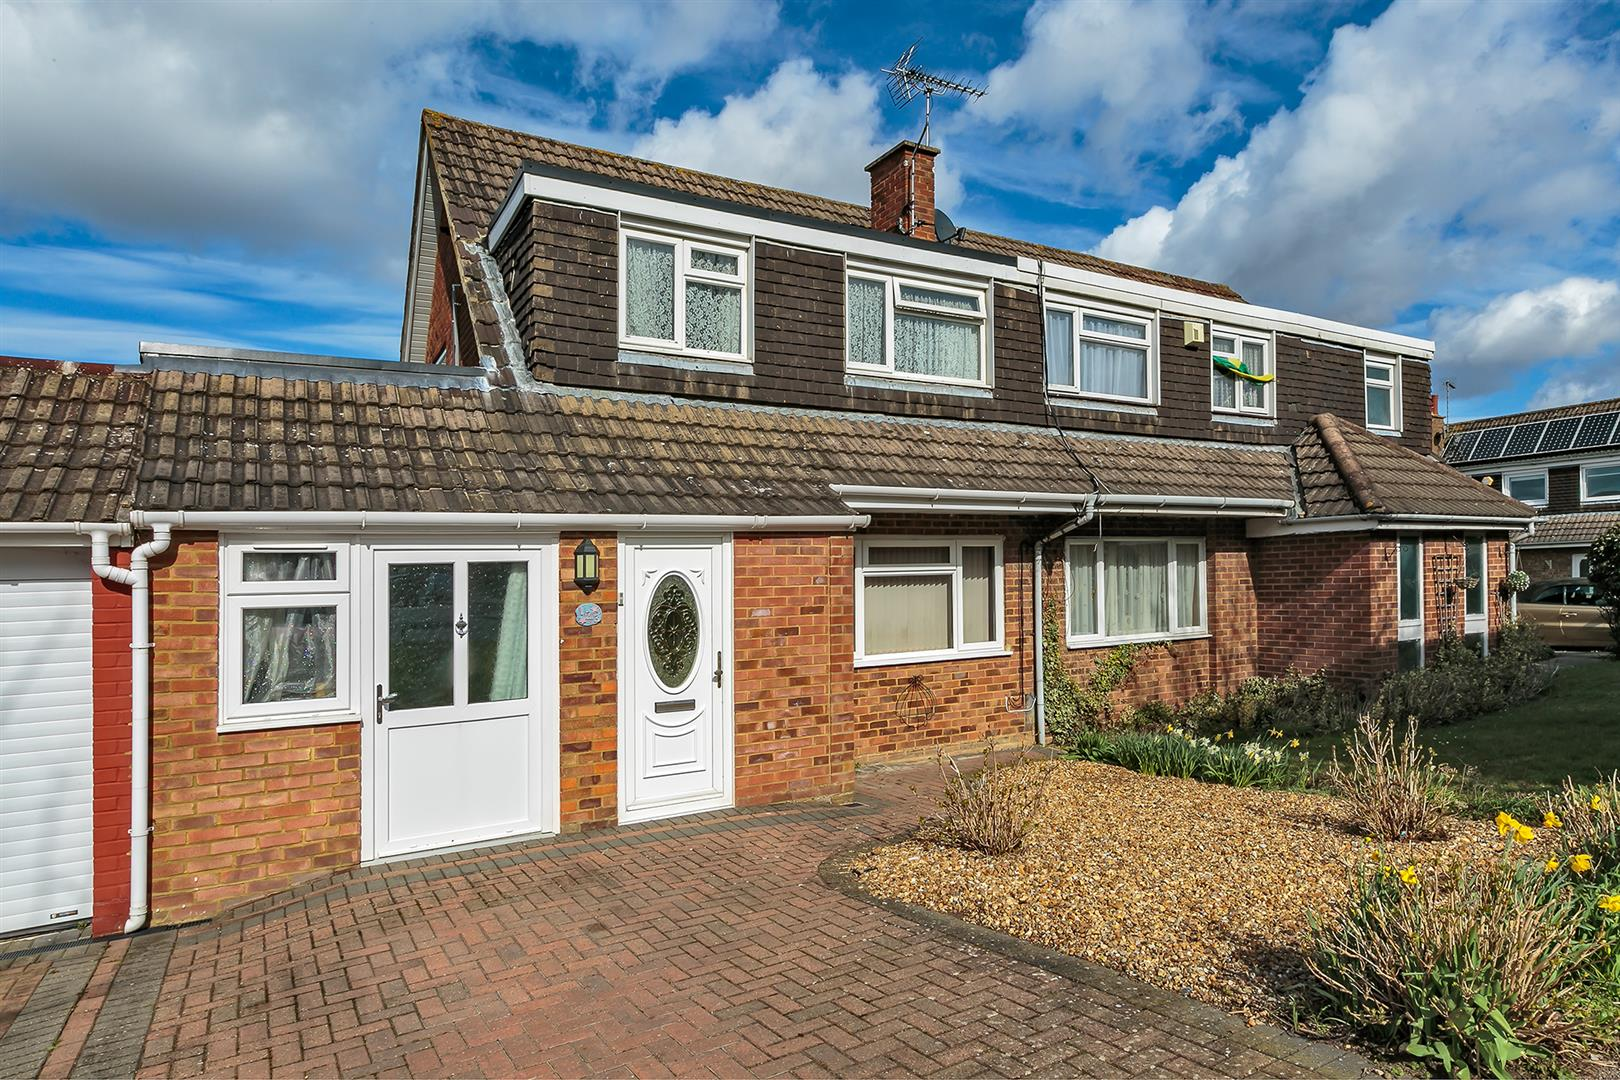 EXTENDED 3 BEDROOM SEMI DETACHED HOUSE. This 3 bedroom semi detached house has been extended to the rear of the property providing the addition of a Sun Room and has an annex with its own street entrance and a wet room alongside. The property briefly com